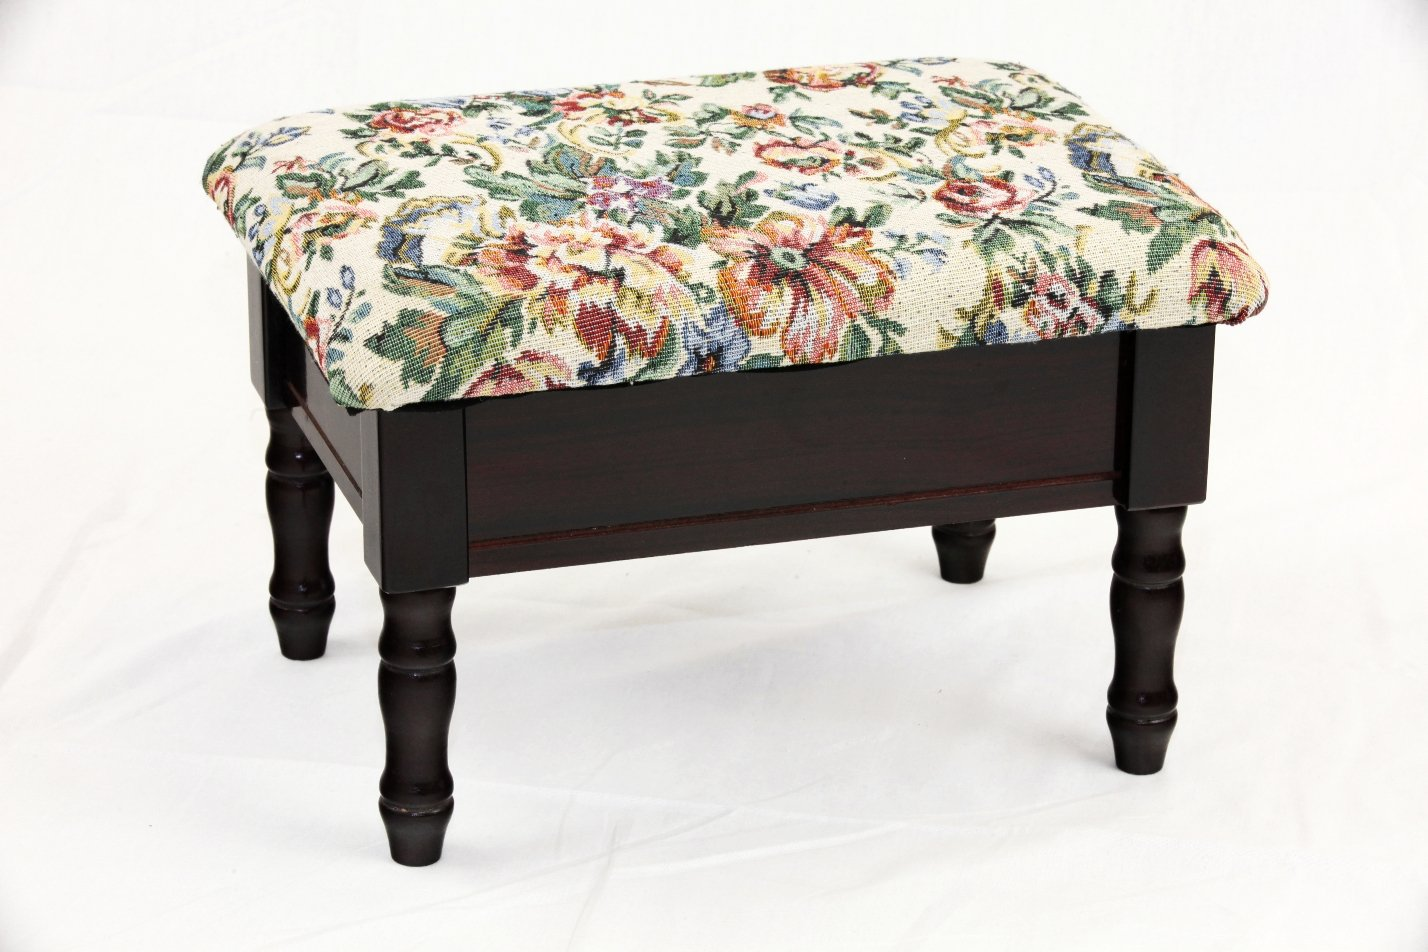 Frenchi Home Furnishing Queen Anne Style Footstool